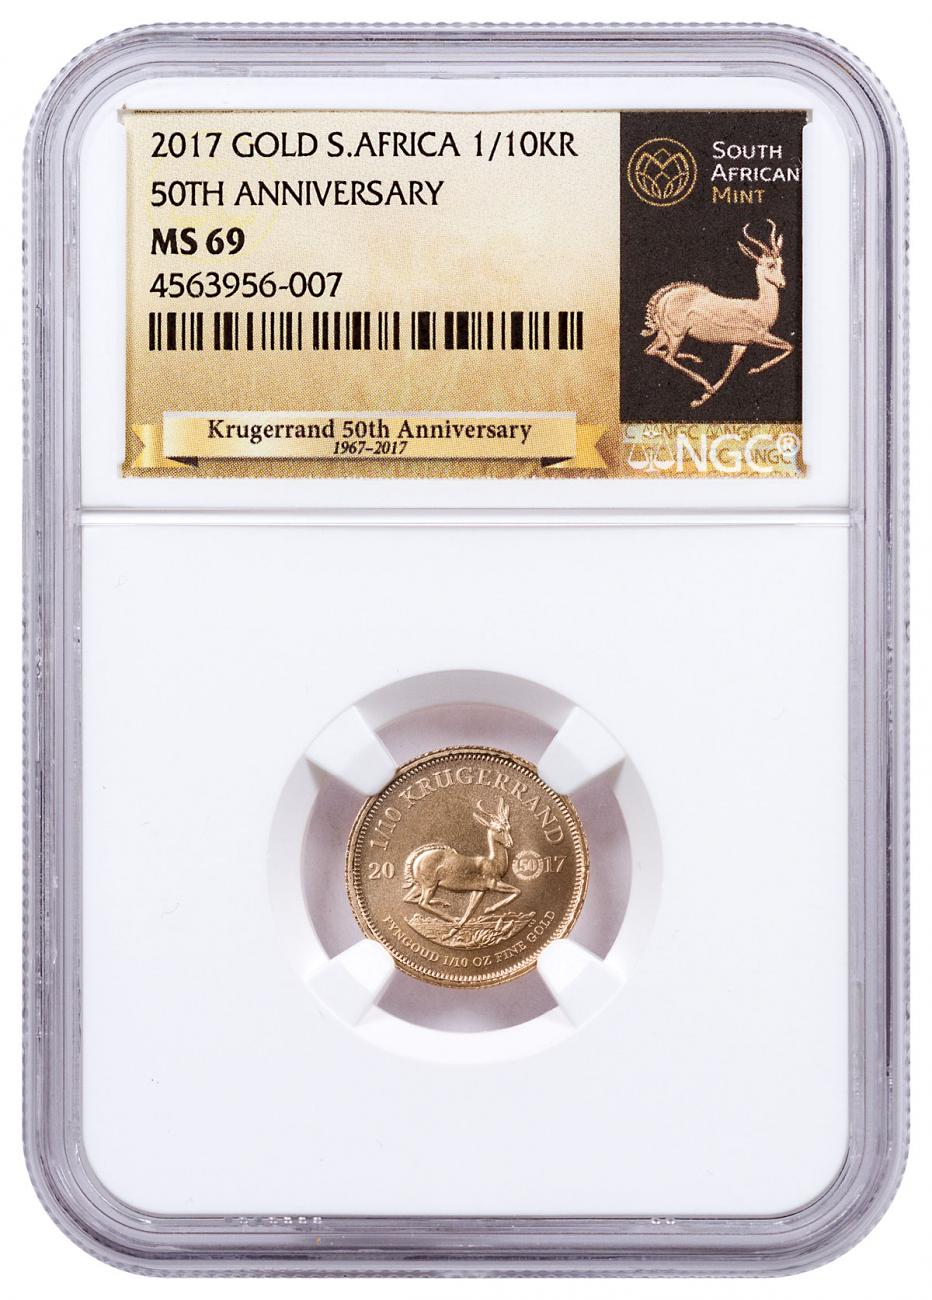 2017 South Africa 1/10 oz Gold Krugerrand - 50th Anniversary Privy Coin NGC MS69